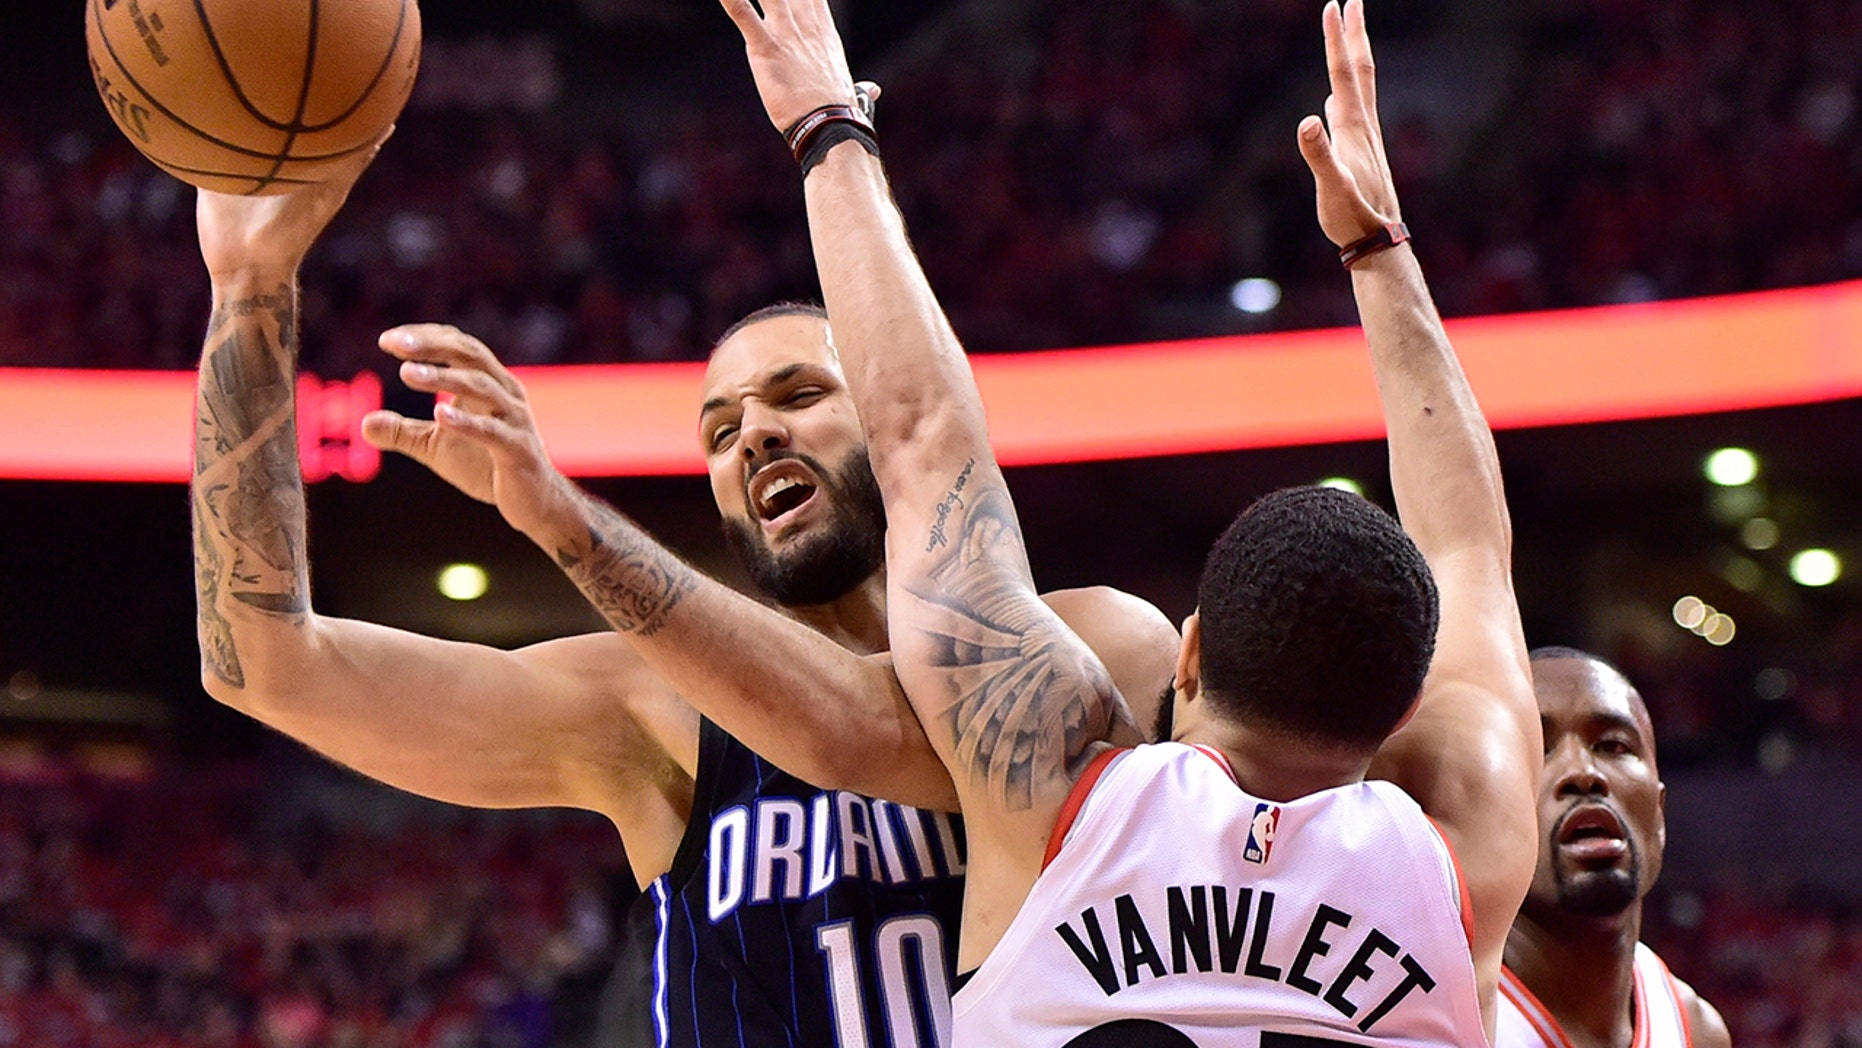 Orlando Magic guard Evan Fournier (10) controls the ball as Toronto Raptors guard Fred VanVleet (23) defends during the second half in Game 1 of a first-round NBA basketball playoff series in Toronto, Saturday, April 13, 2019. (Frank Gunn/The Canadian Press via AP)